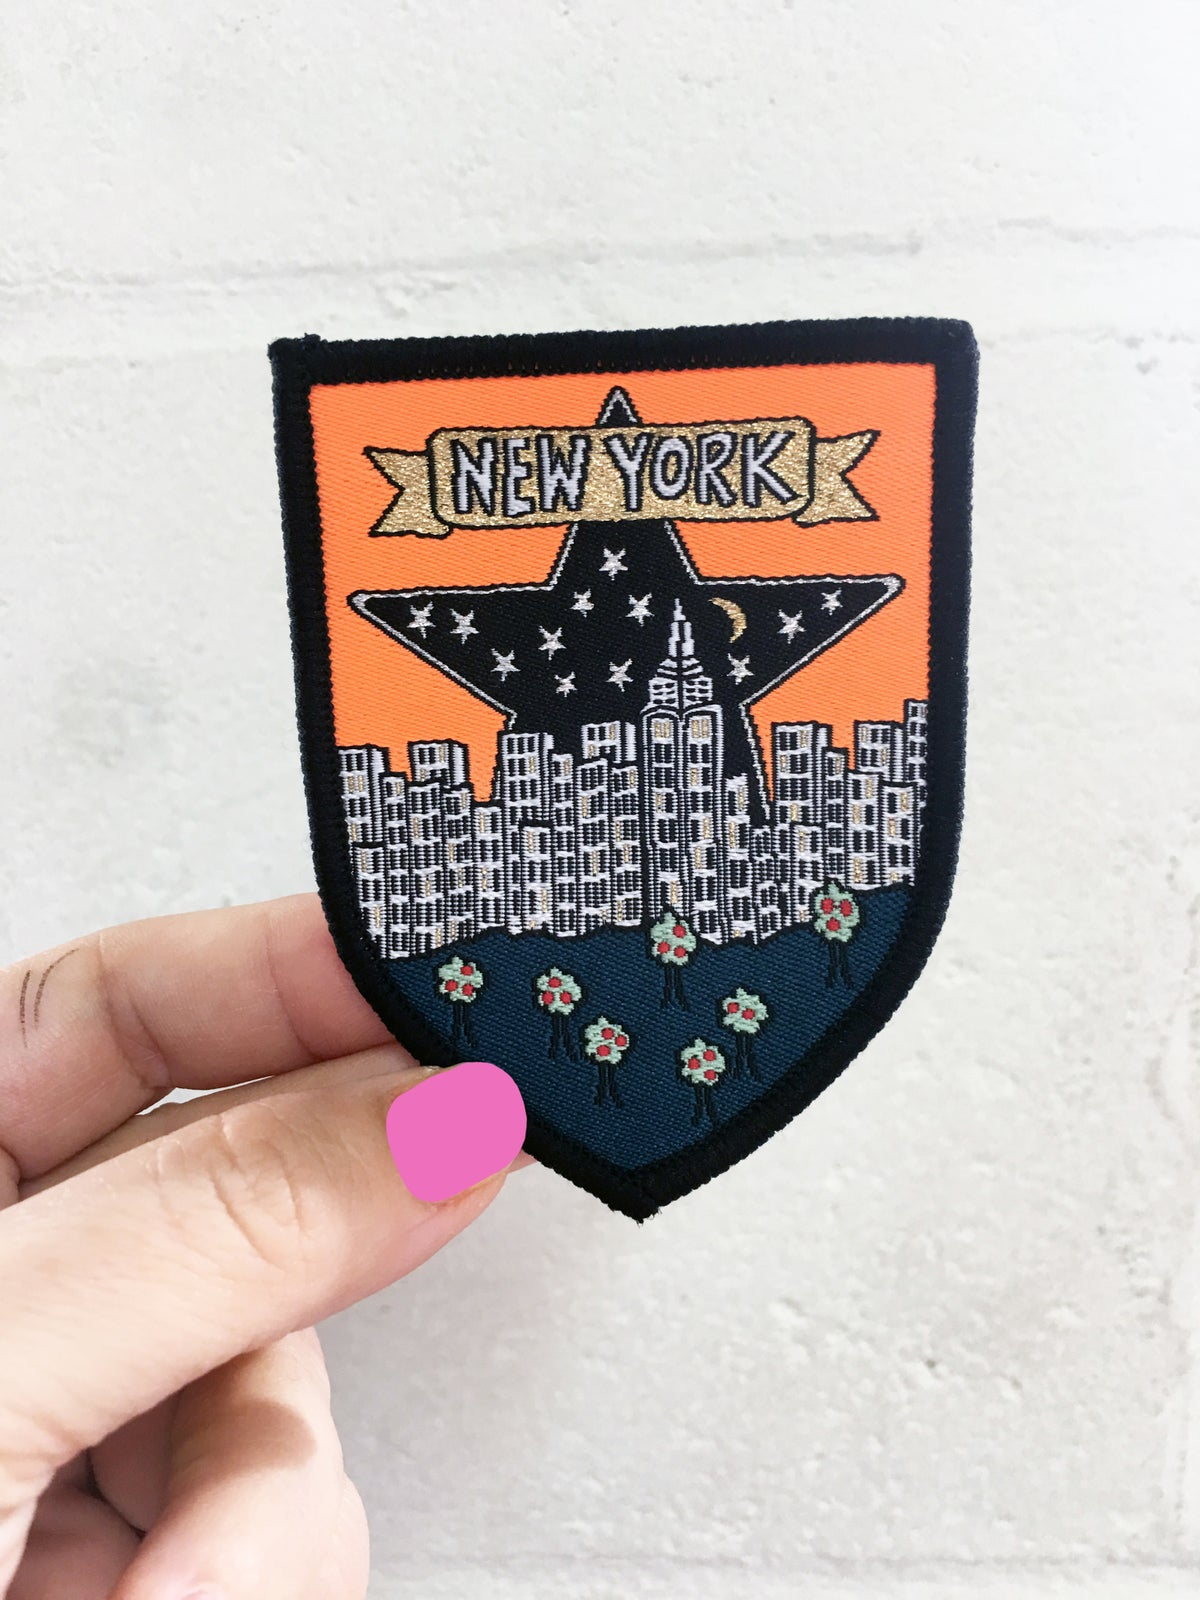 New York Travel Patch - Iron on Patch